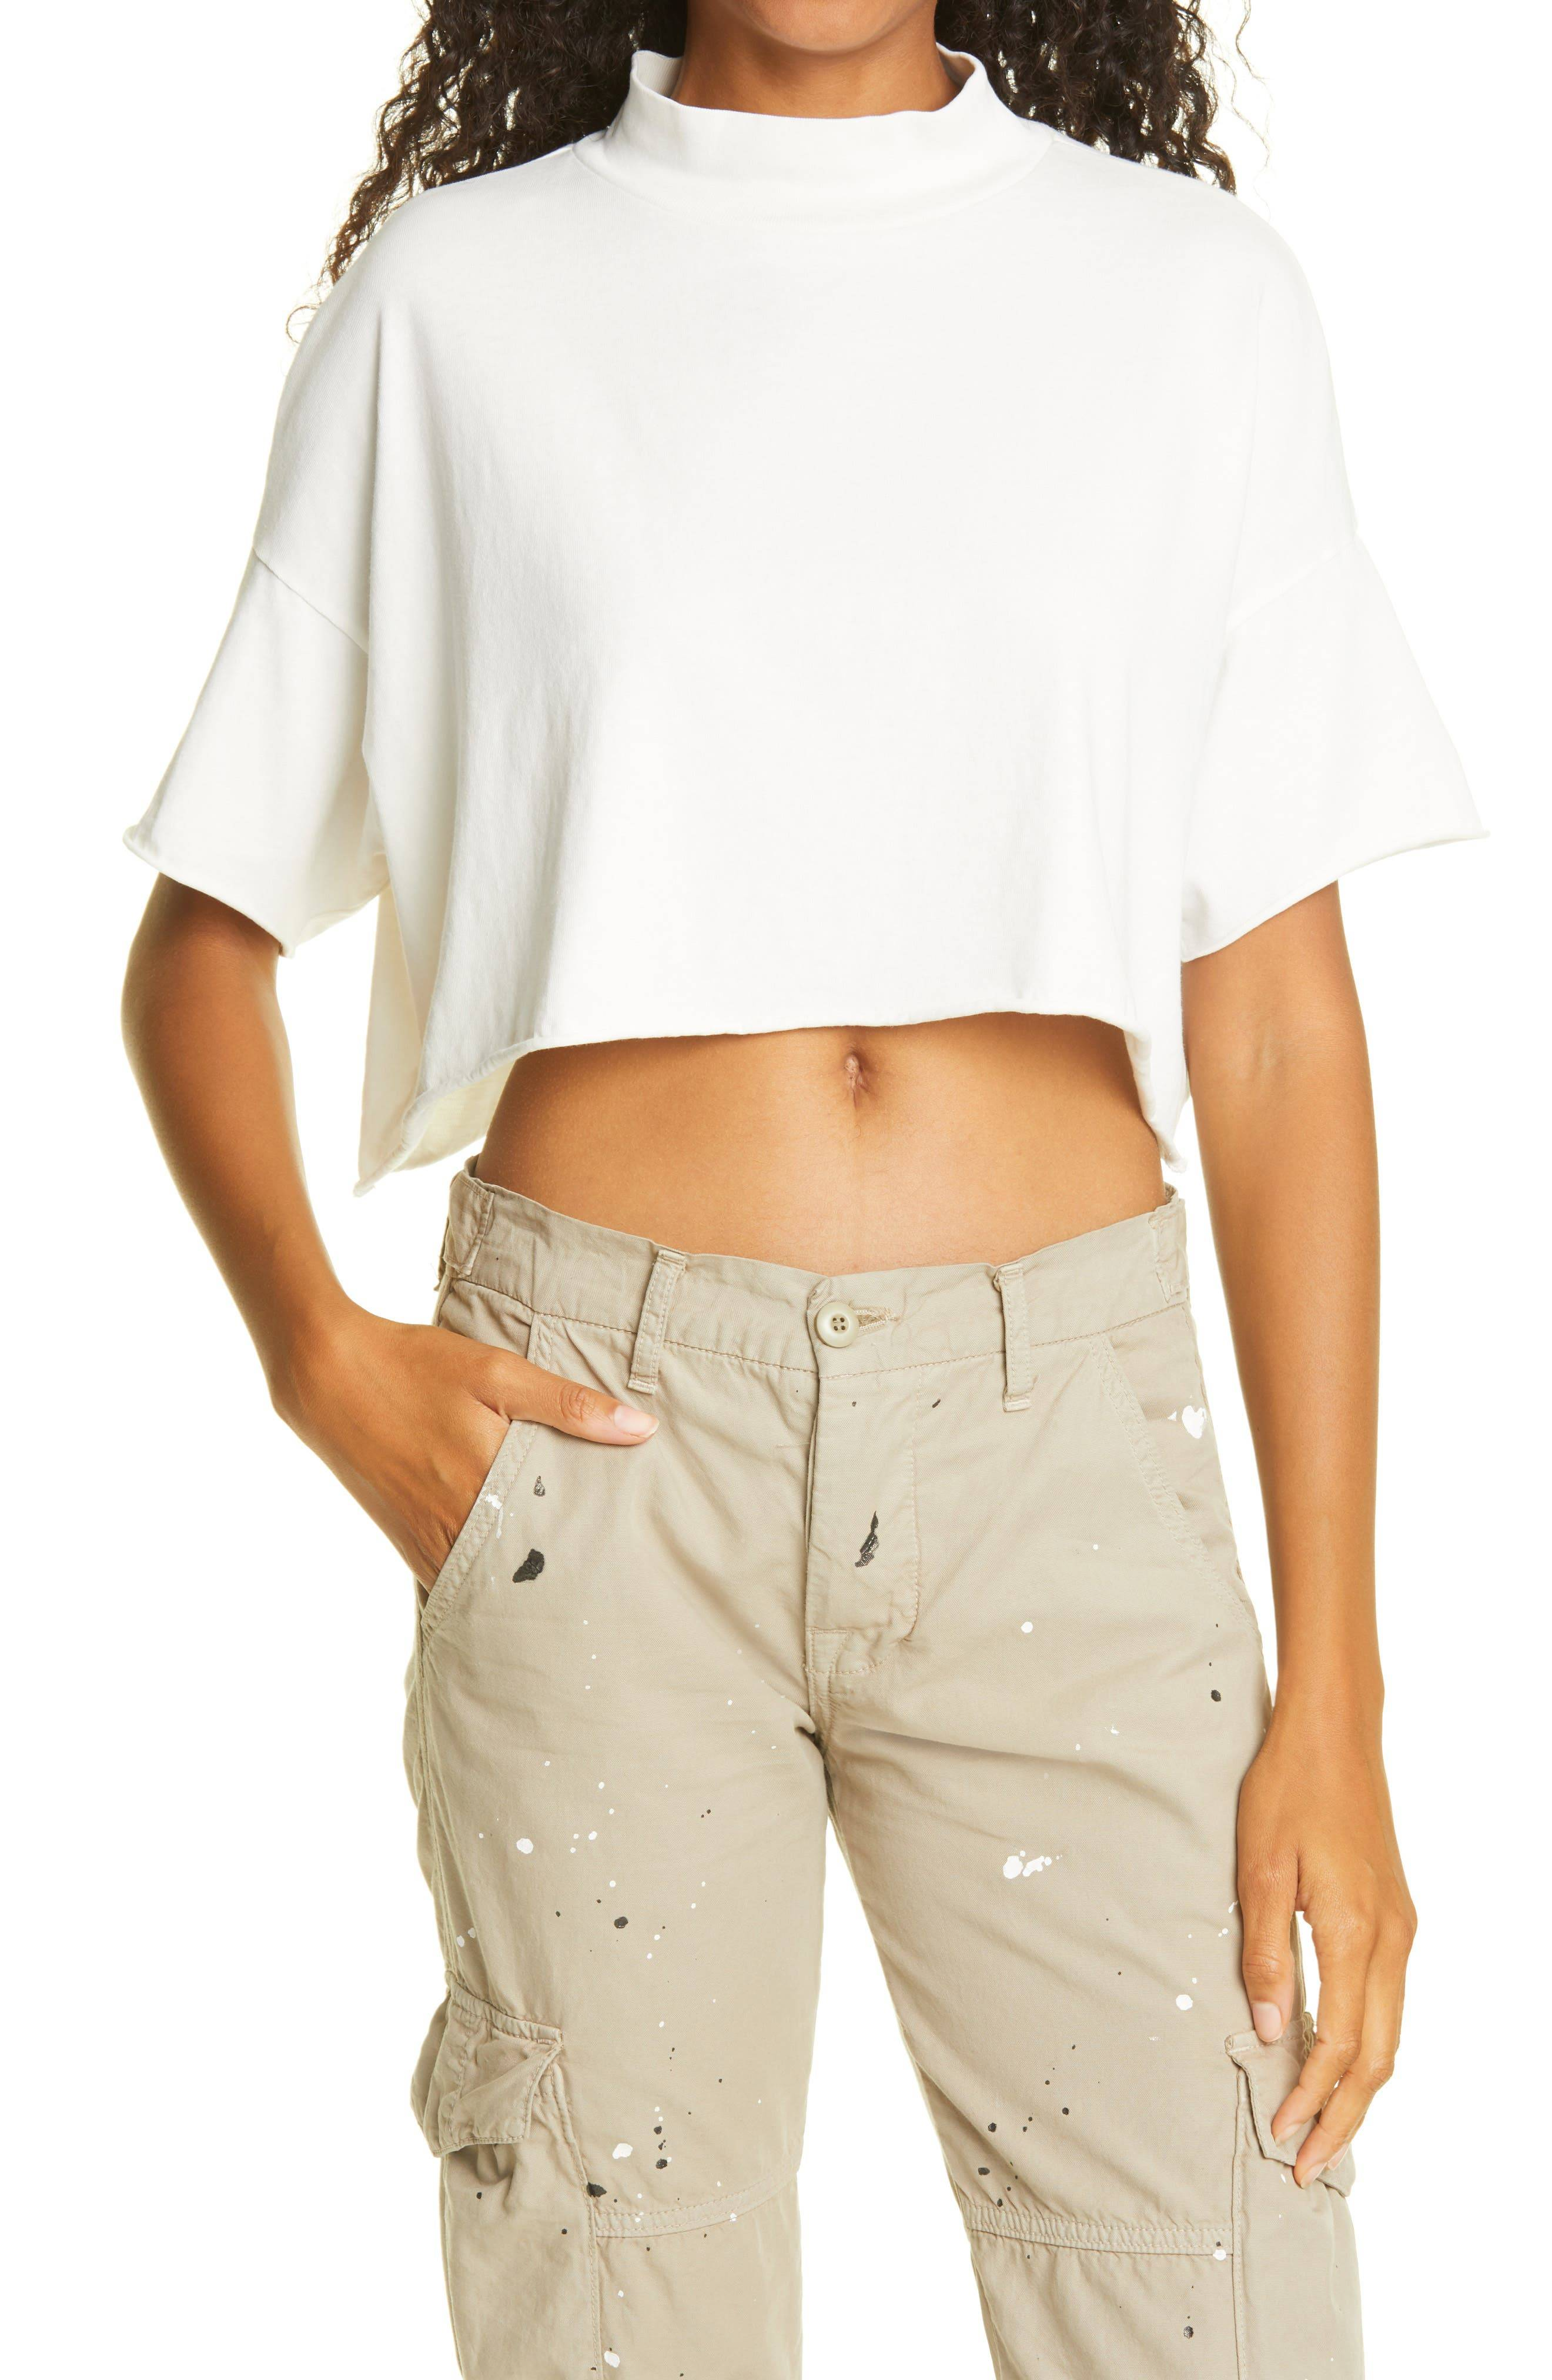 NSF Clothing Women's Nsf Clothing Cindy Mock Neck Crop Top, Size Large - White